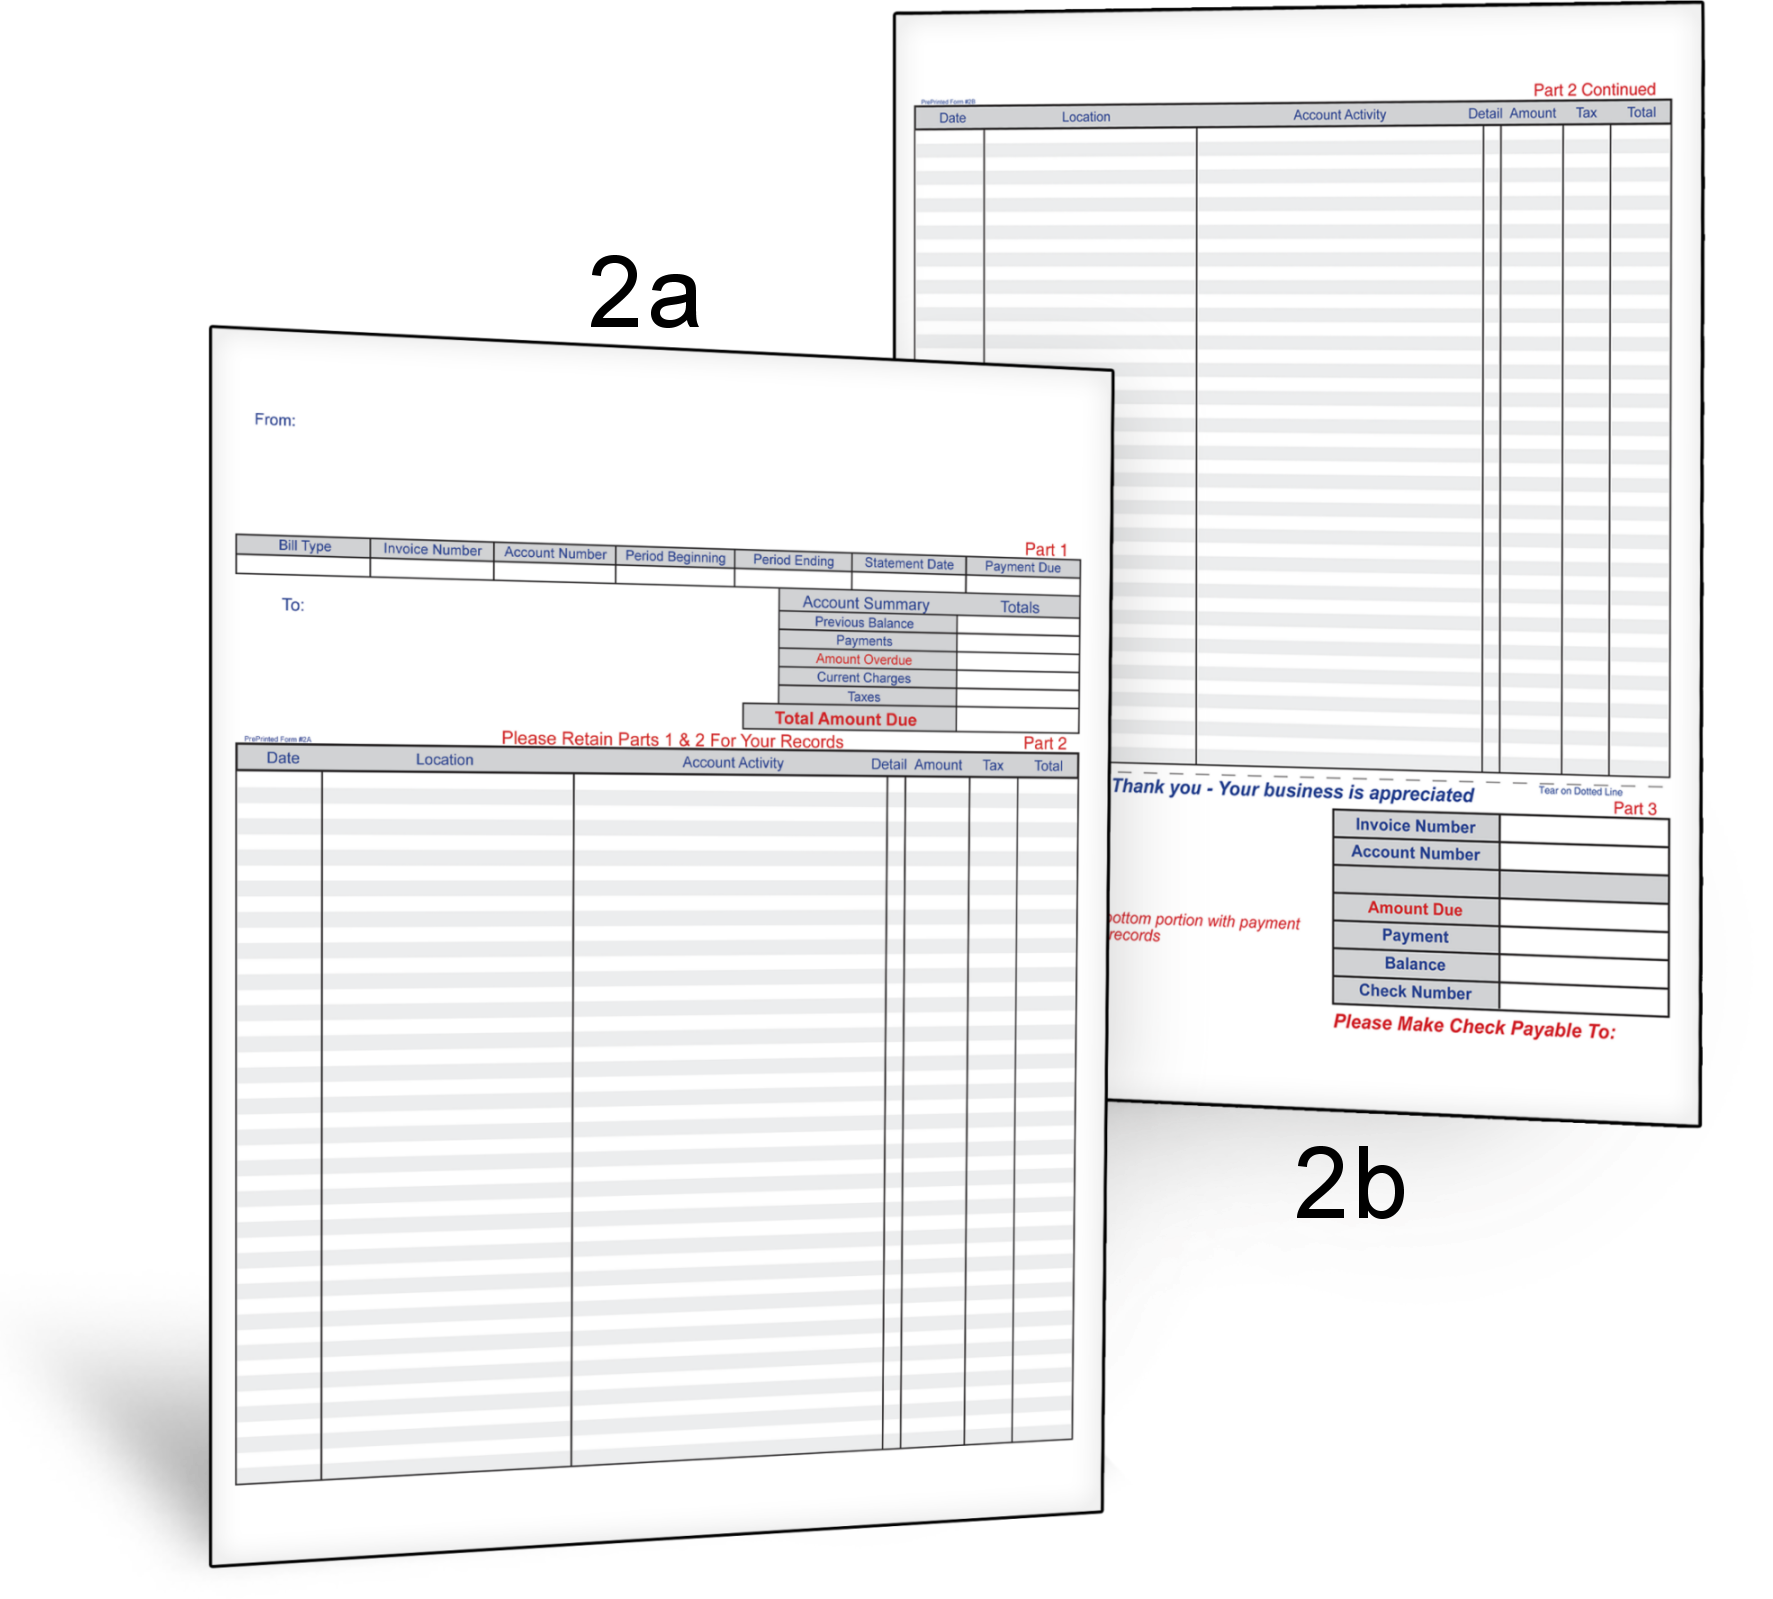 invoice form 2a 2b lawn care business software